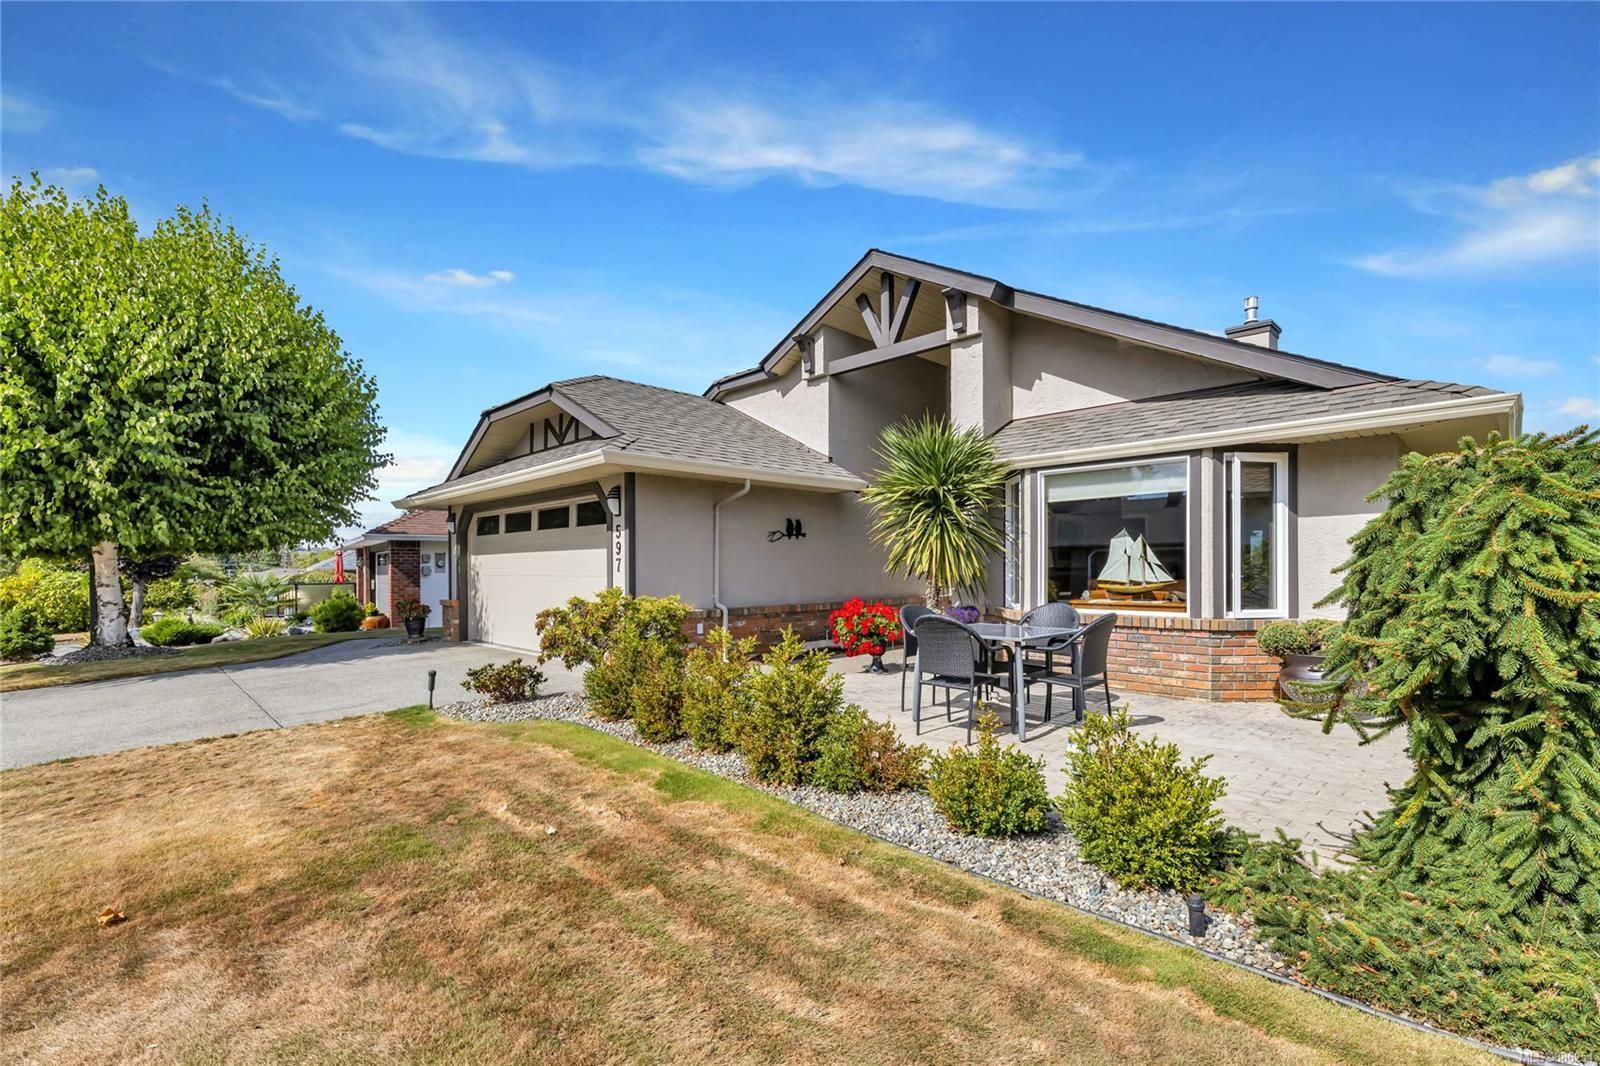 597 Pine Ridge Dr, level lot with golf course & mountain views